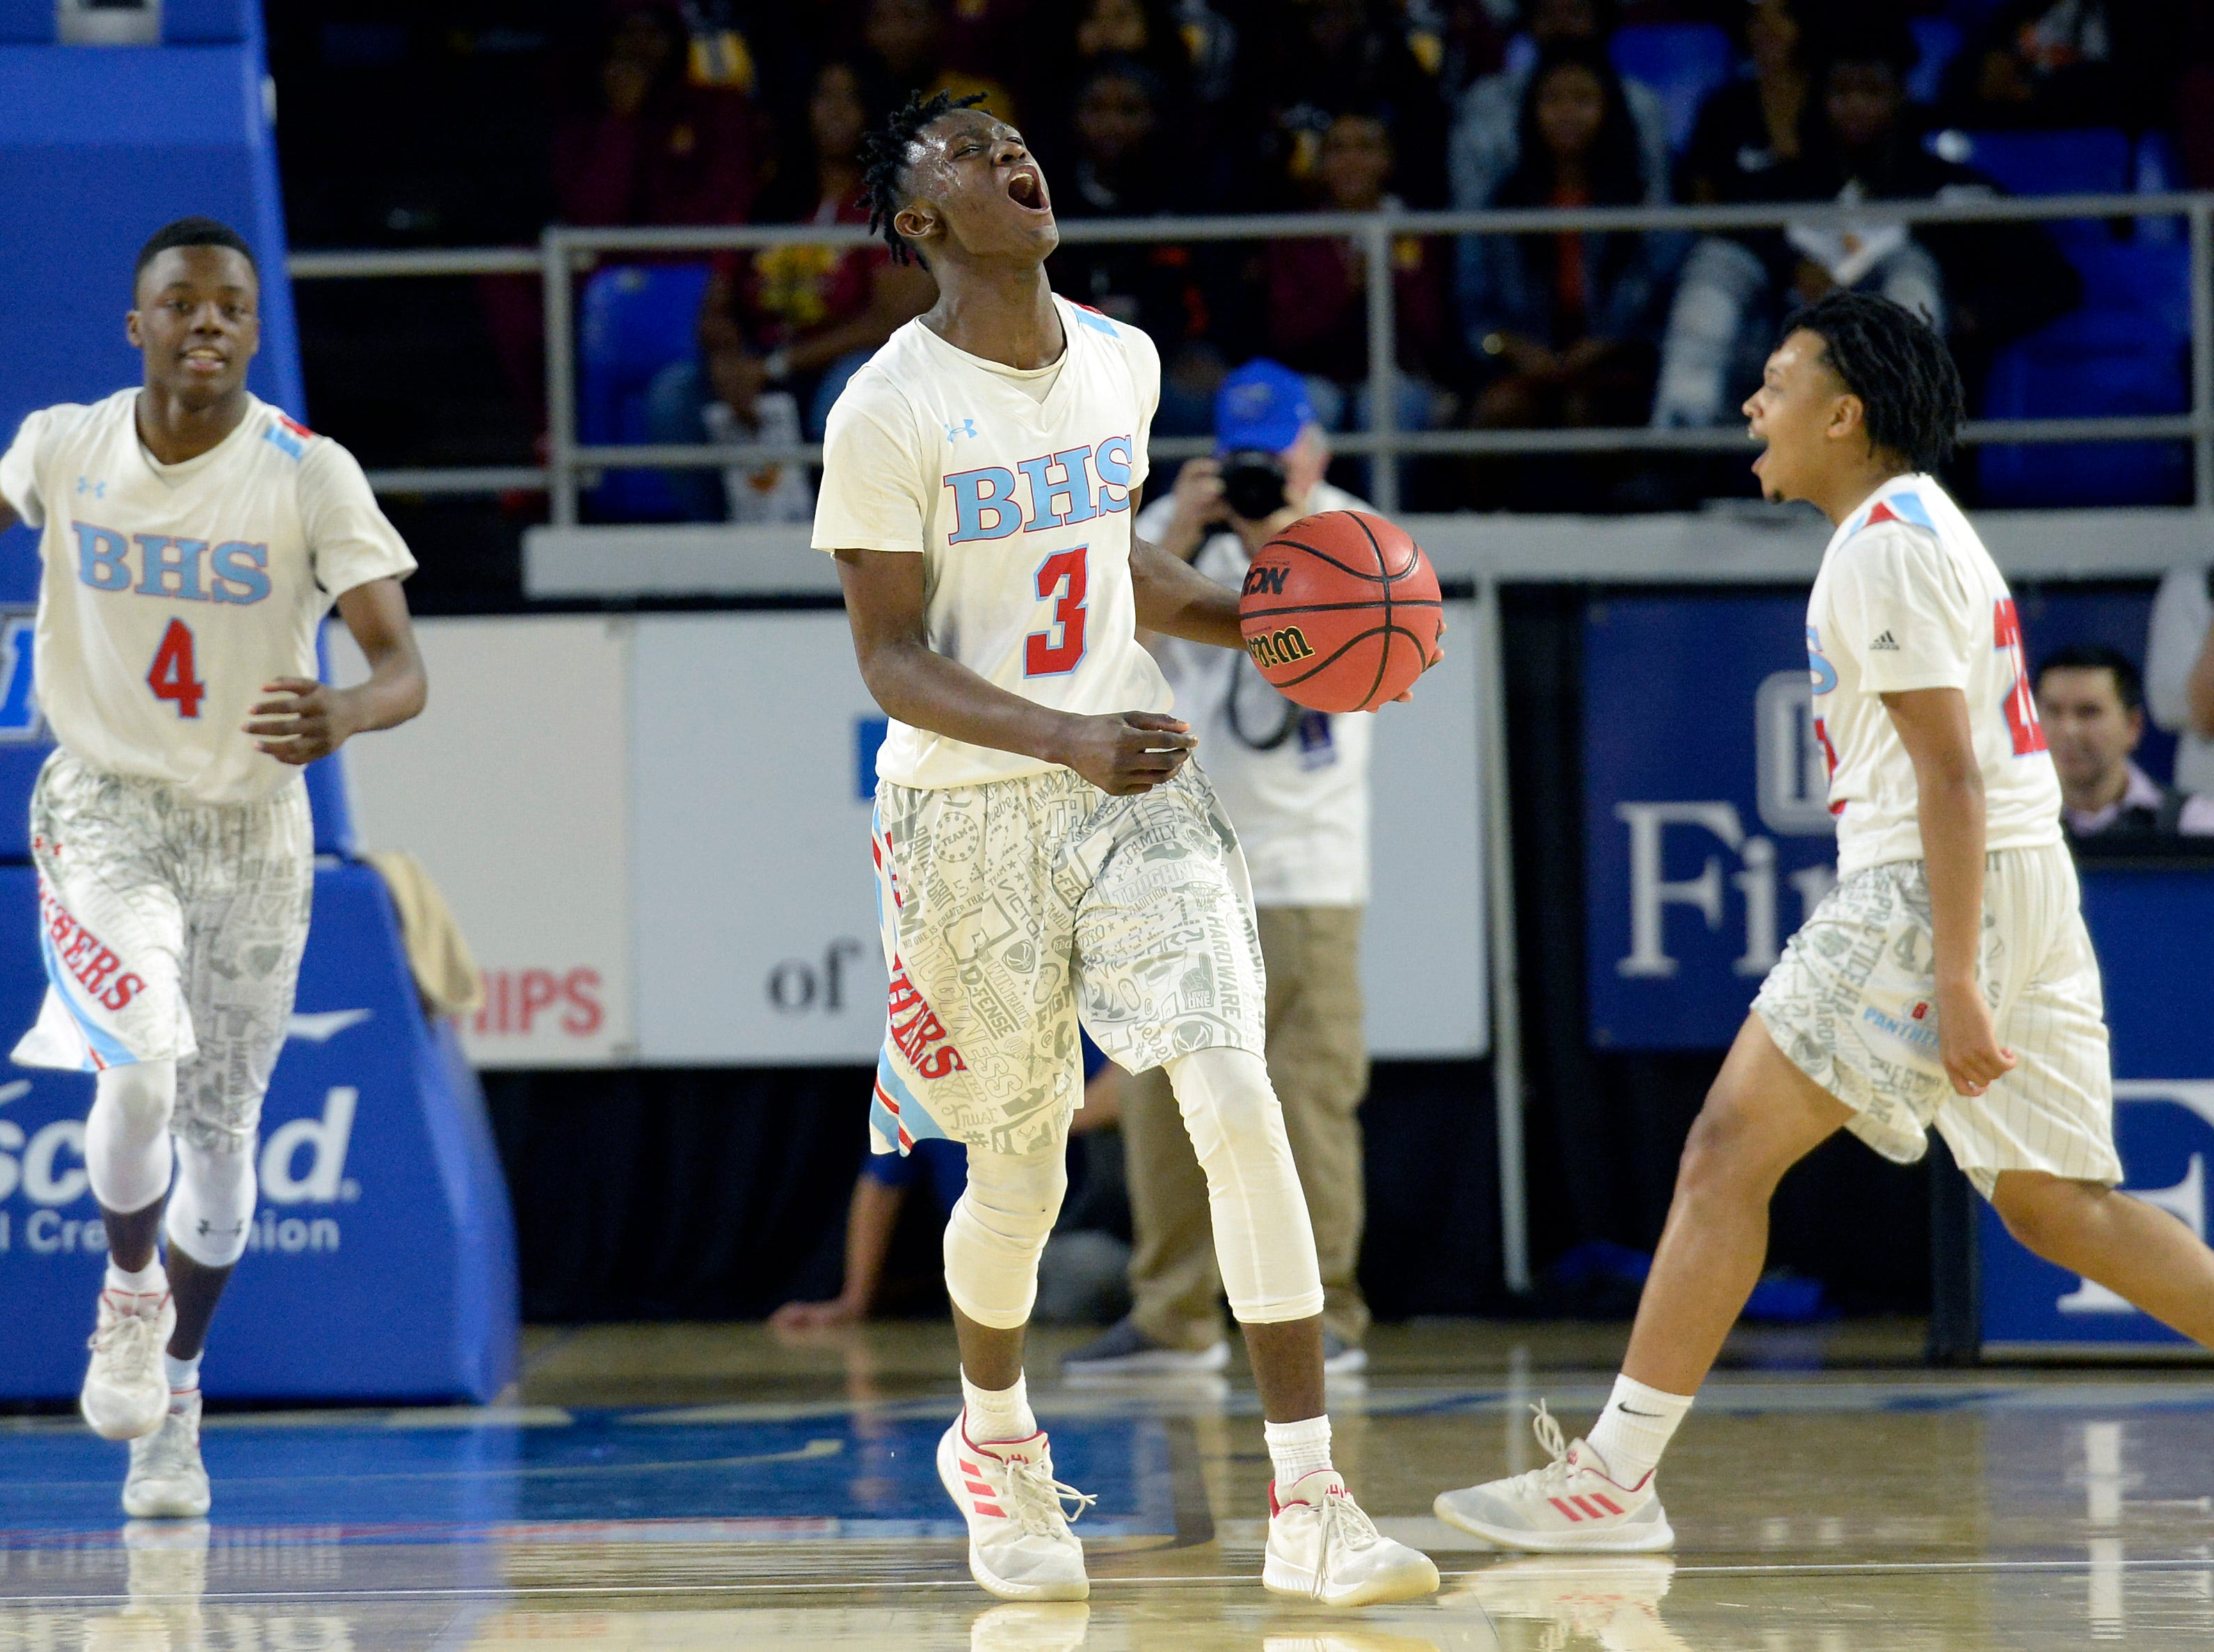 Brainerd's Laderron Freeman (4), Tommie Owten (3) and Cavonte McKibbens, right, celebrate after the team's 76-73 win against Pearl-Cohn in a Class AA boys state basketball quarterfinal game Wednesday, March 13, 2019, in Murfreesboro, Tenn.